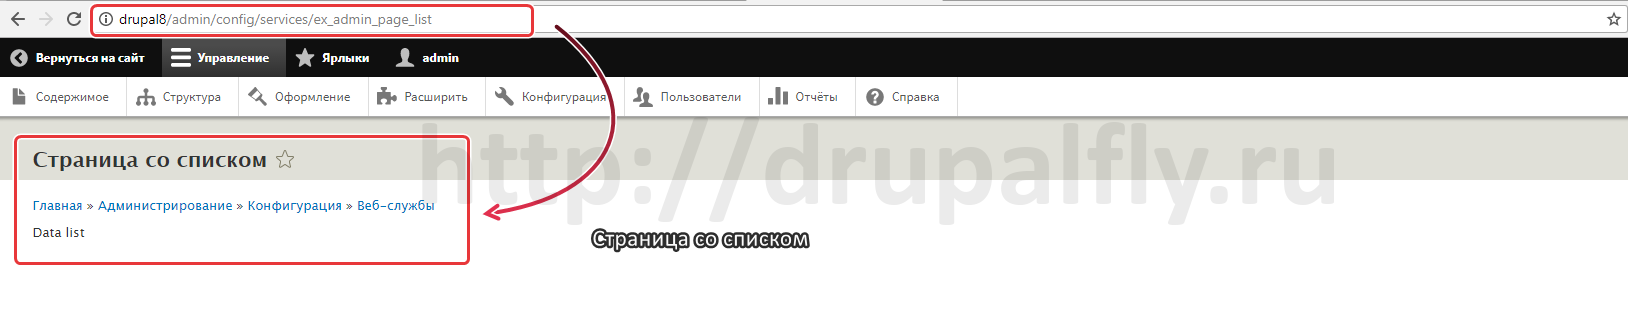 create_administration_page_in_drupal_8.png